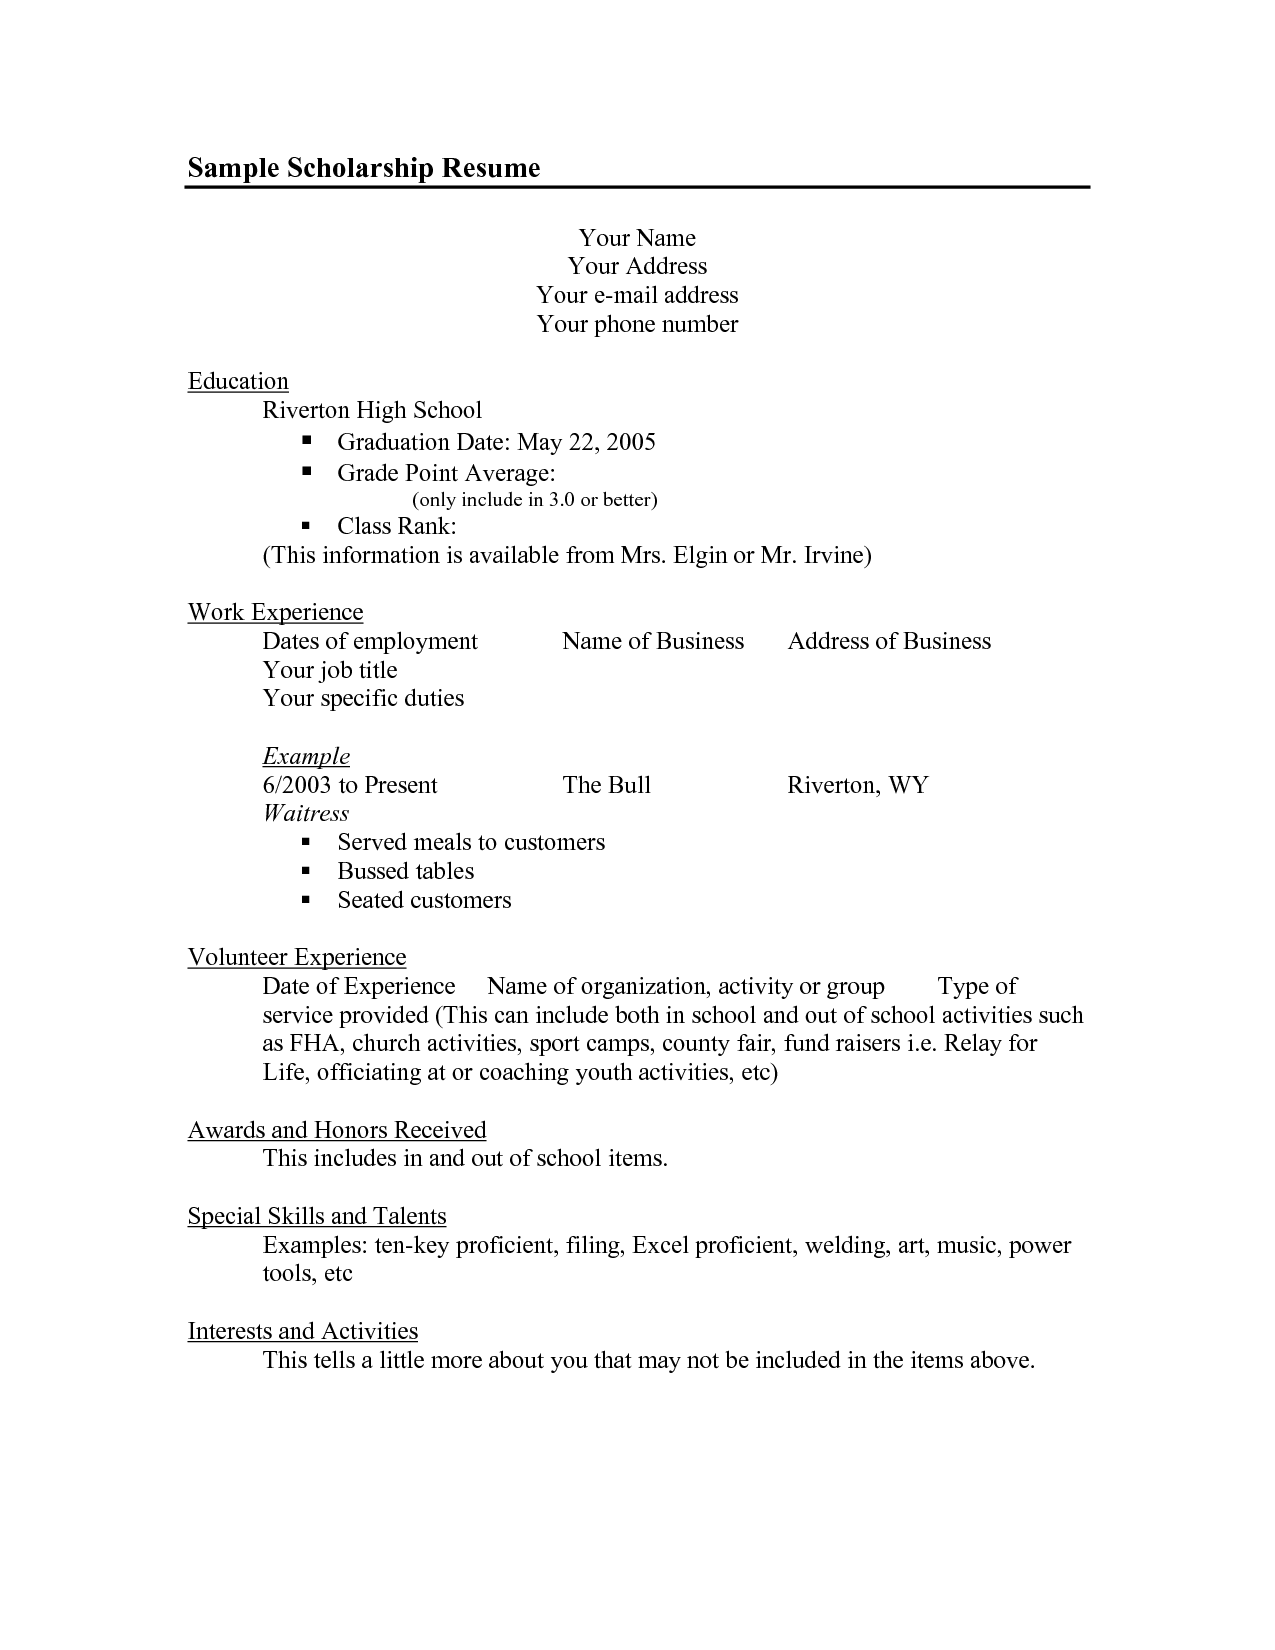 Pin By Teresa Keele On Projects To Try College Resume High School Scholarships Job Resume Samples